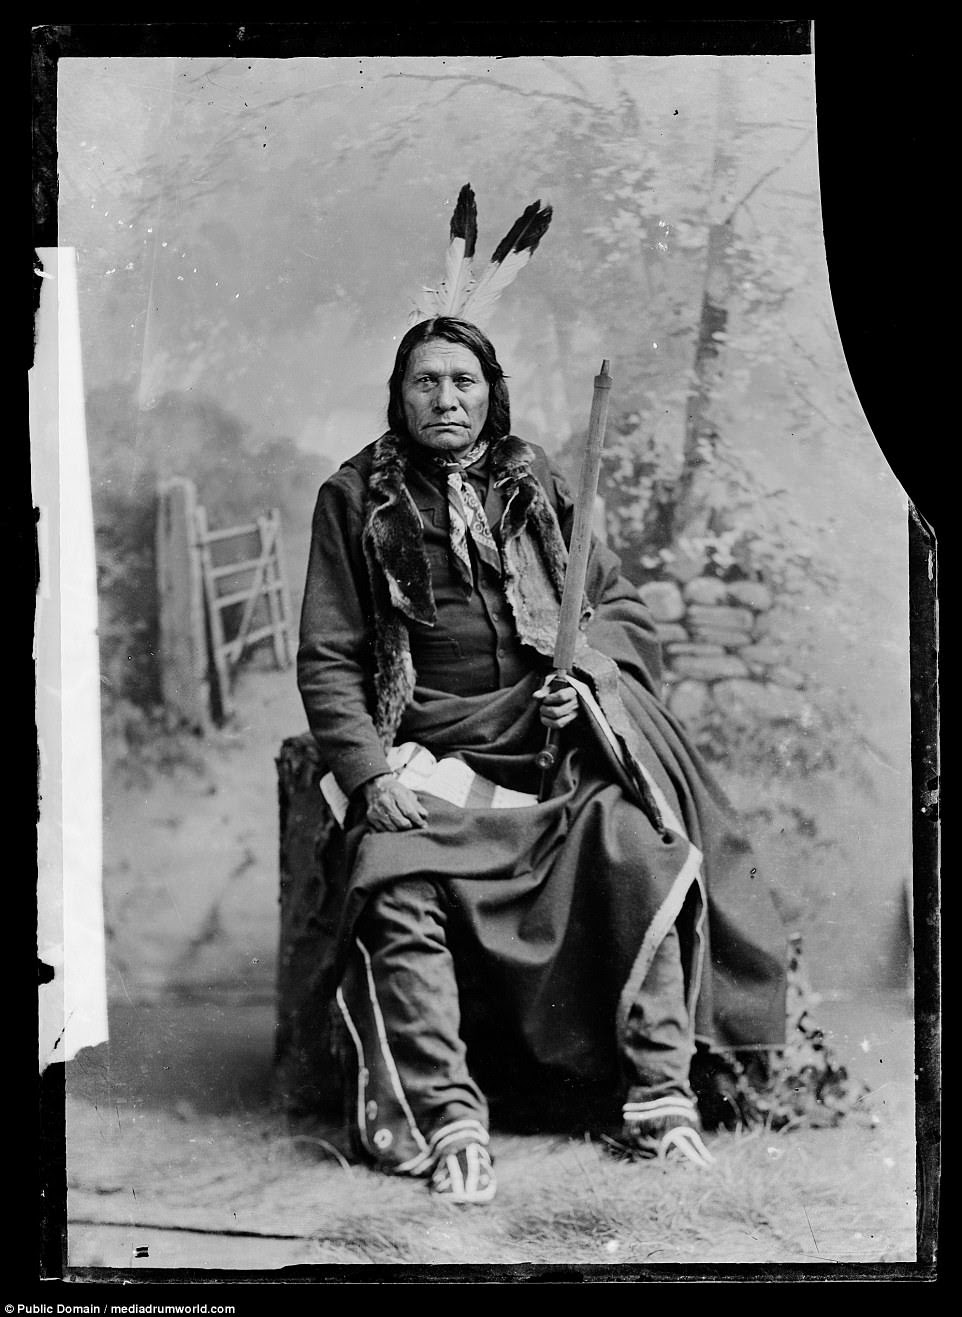 Big Road, a Lakota leader, in 1899. The majority of Native American peoples were forced to accept lives on reservations